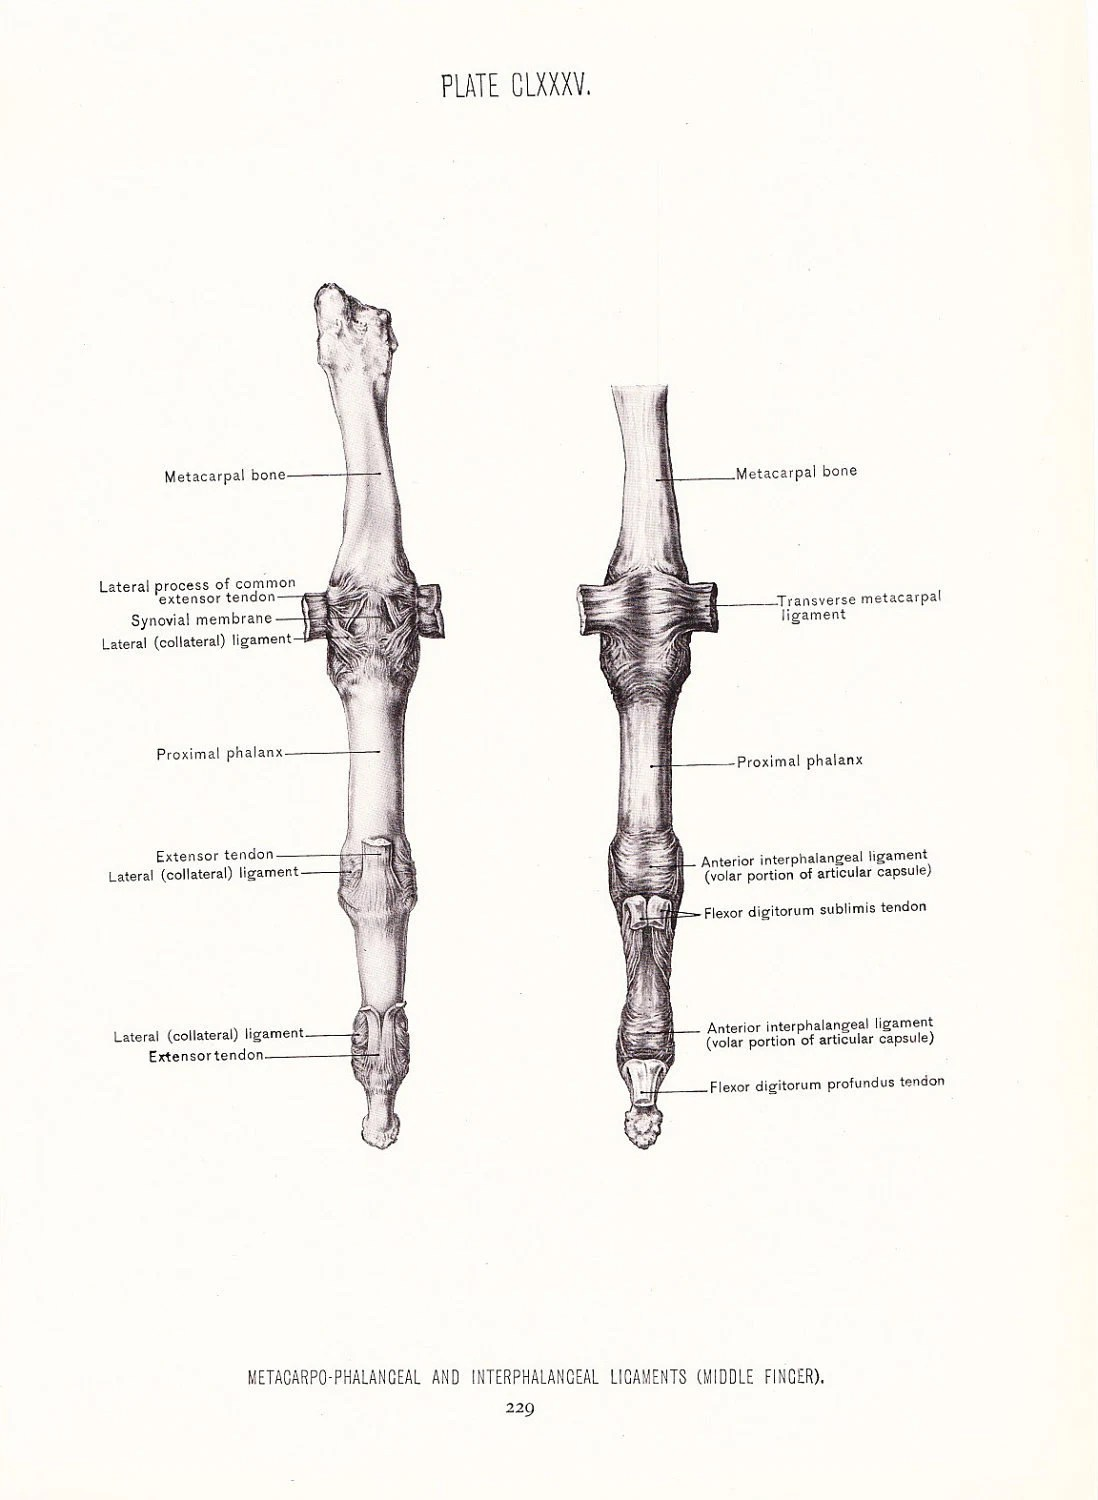 1926 Human Anatomy Print Ligaments of Middle Finger